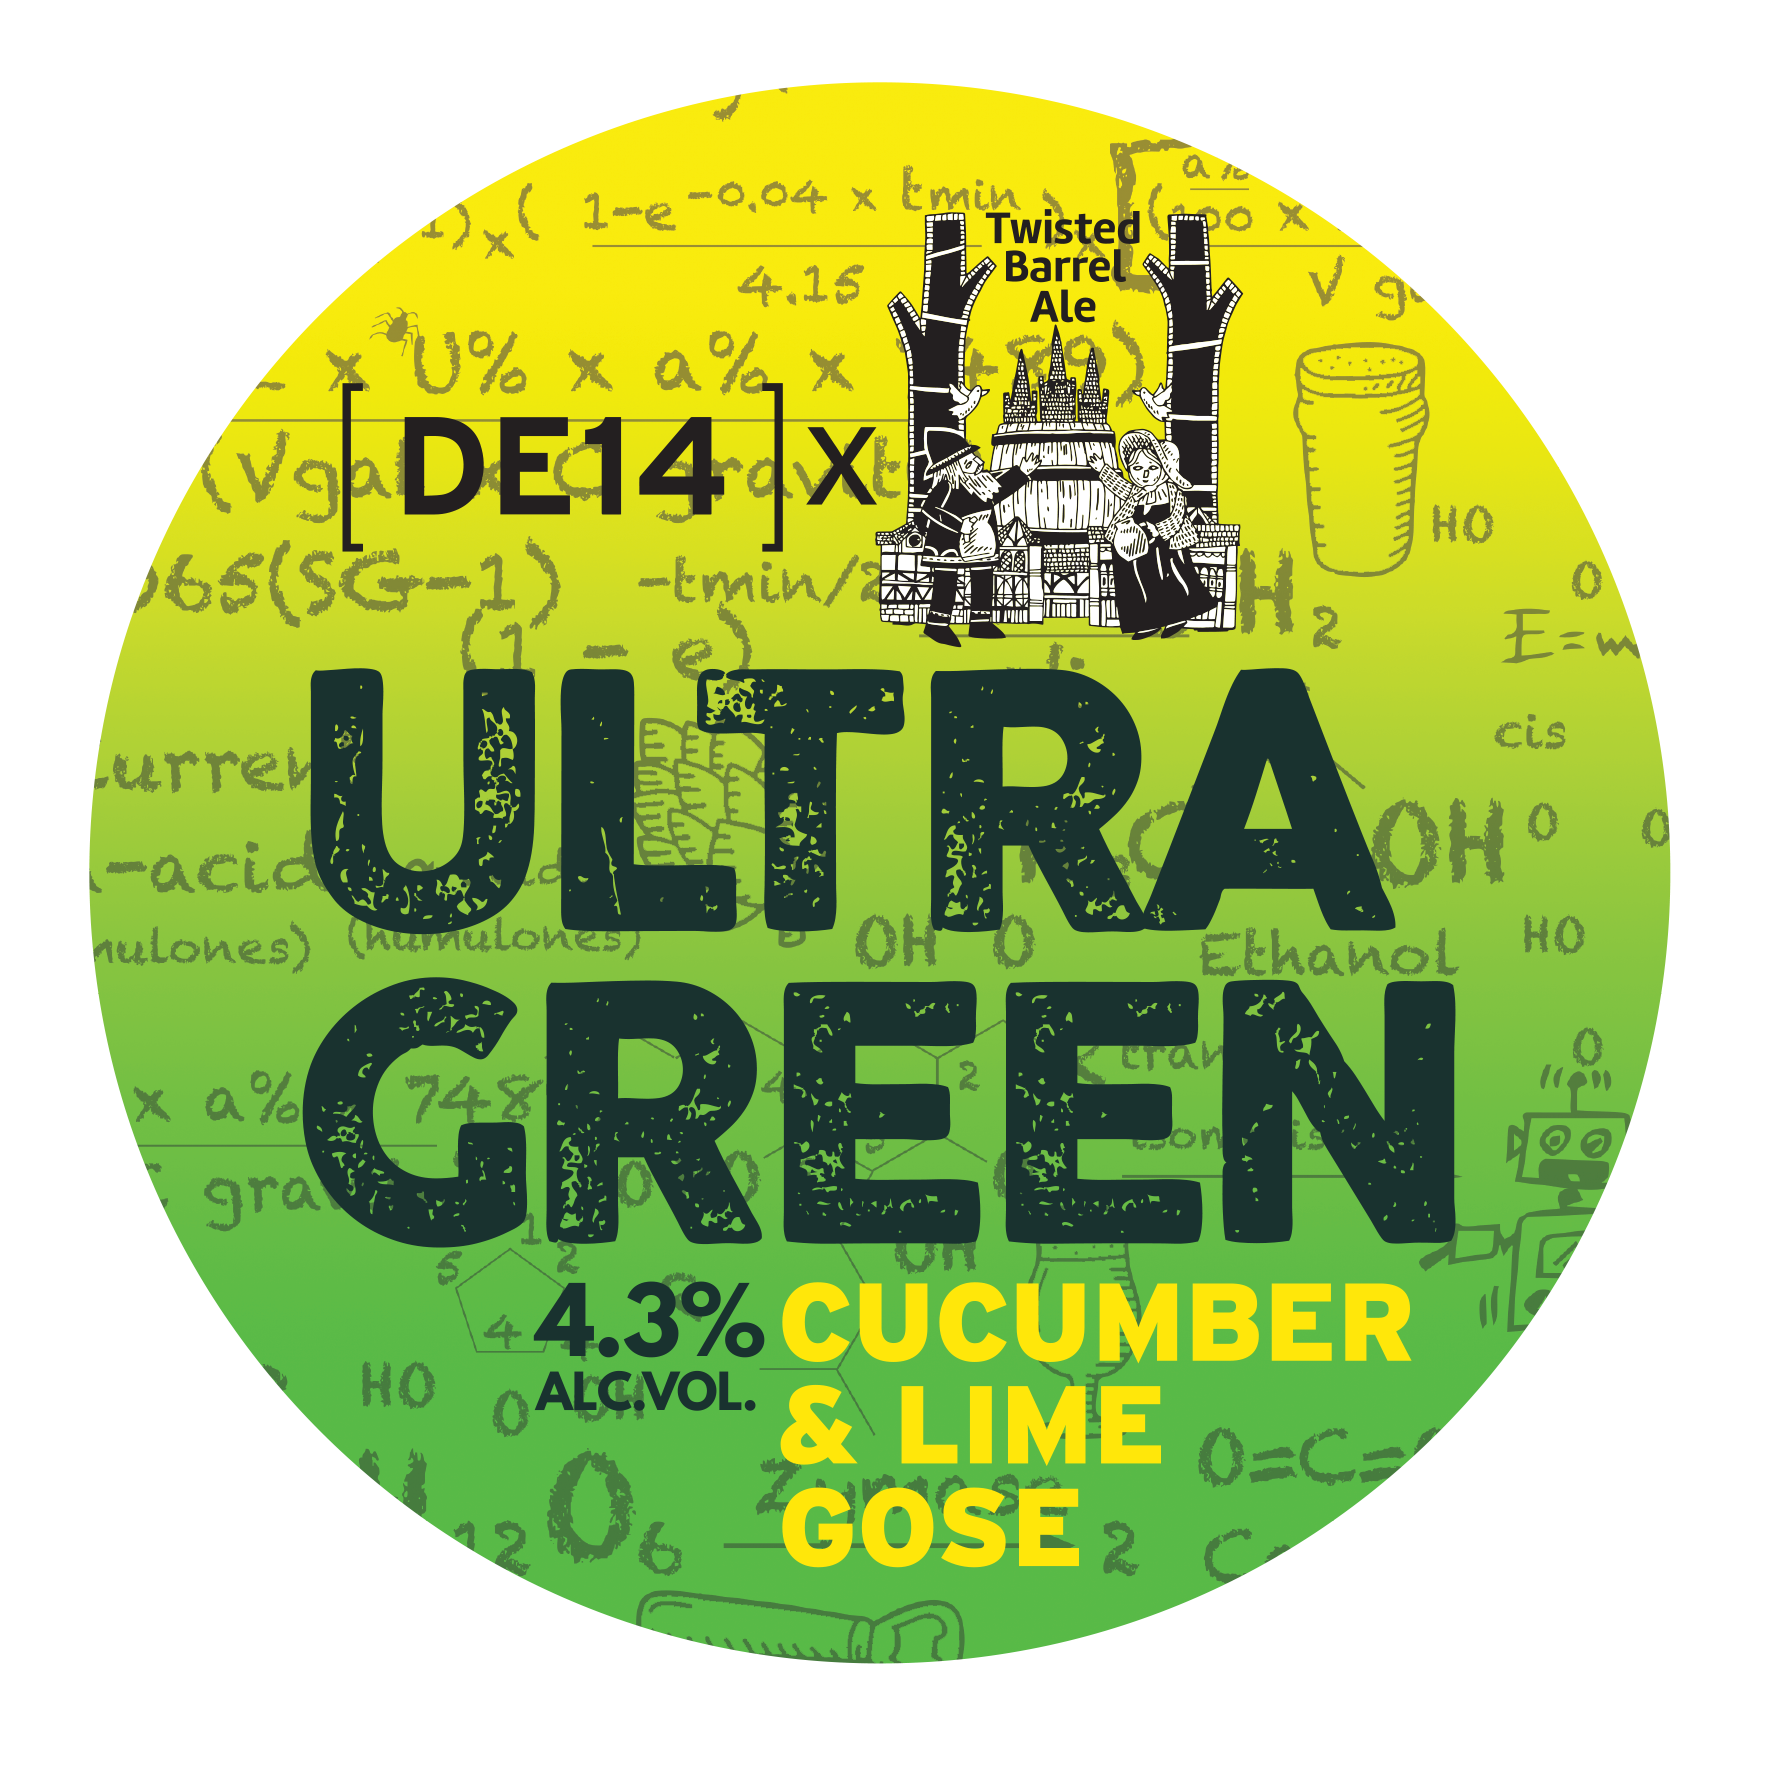 UltraGreen – Our 2nd collab beer with Twisted Barrel